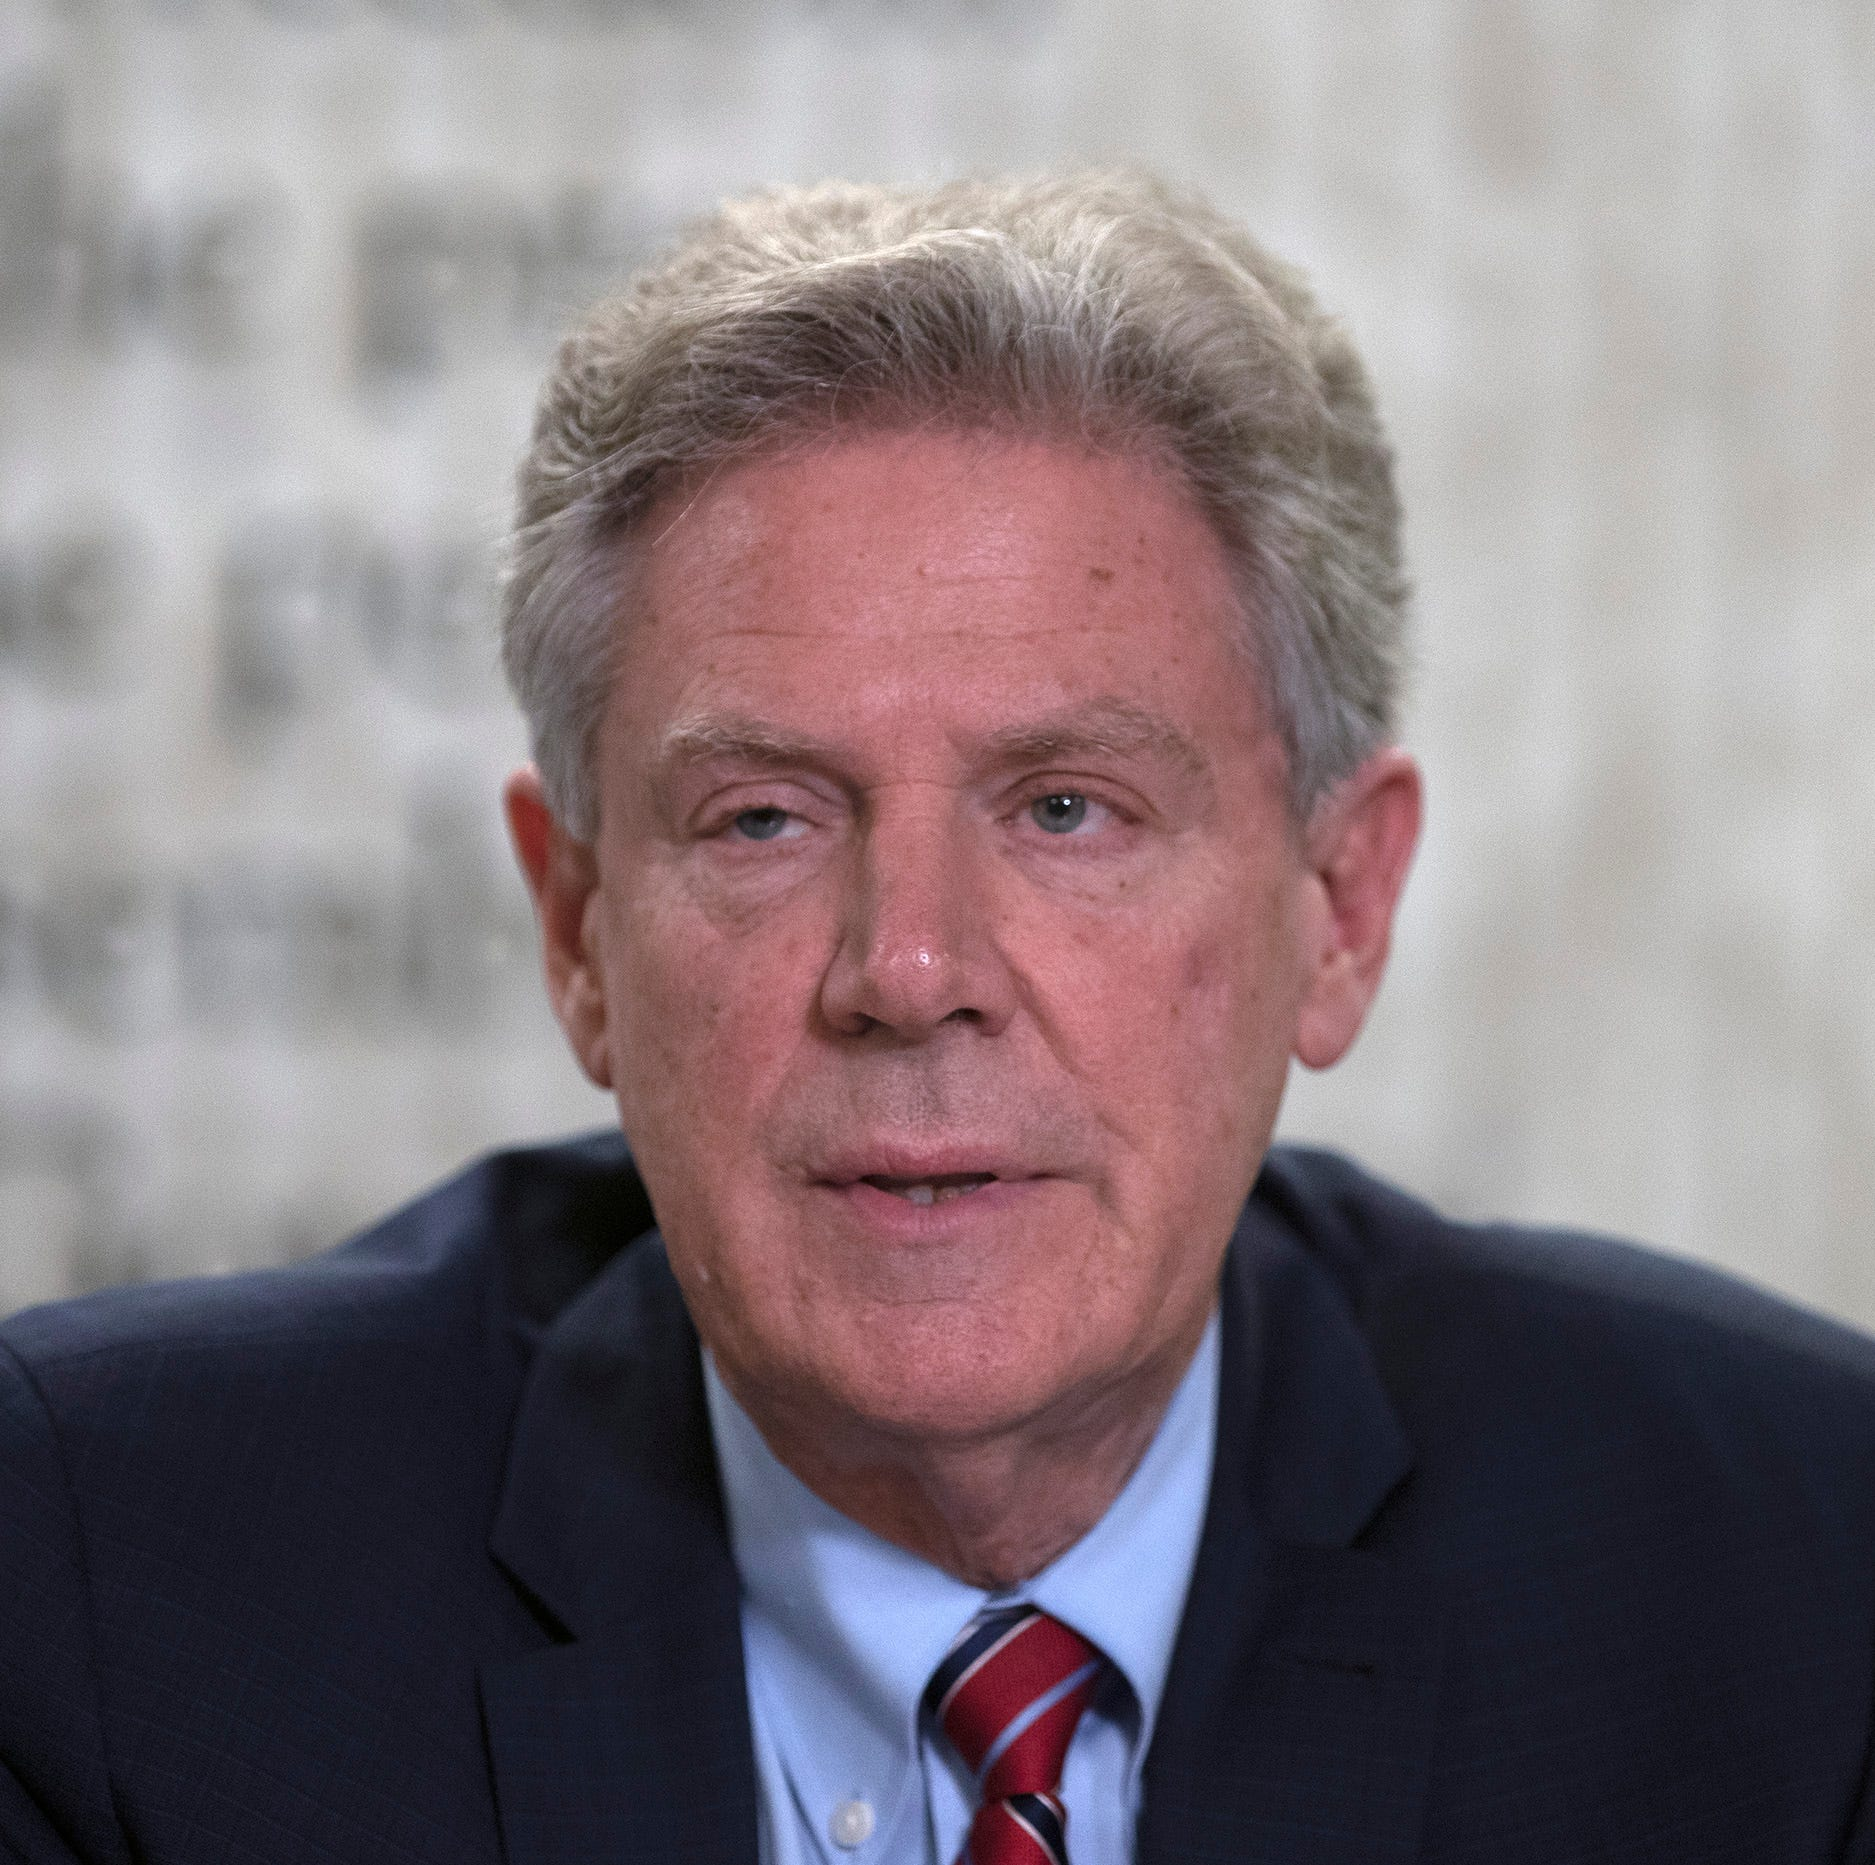 Trump's health care lies disgraceful:  Pallone